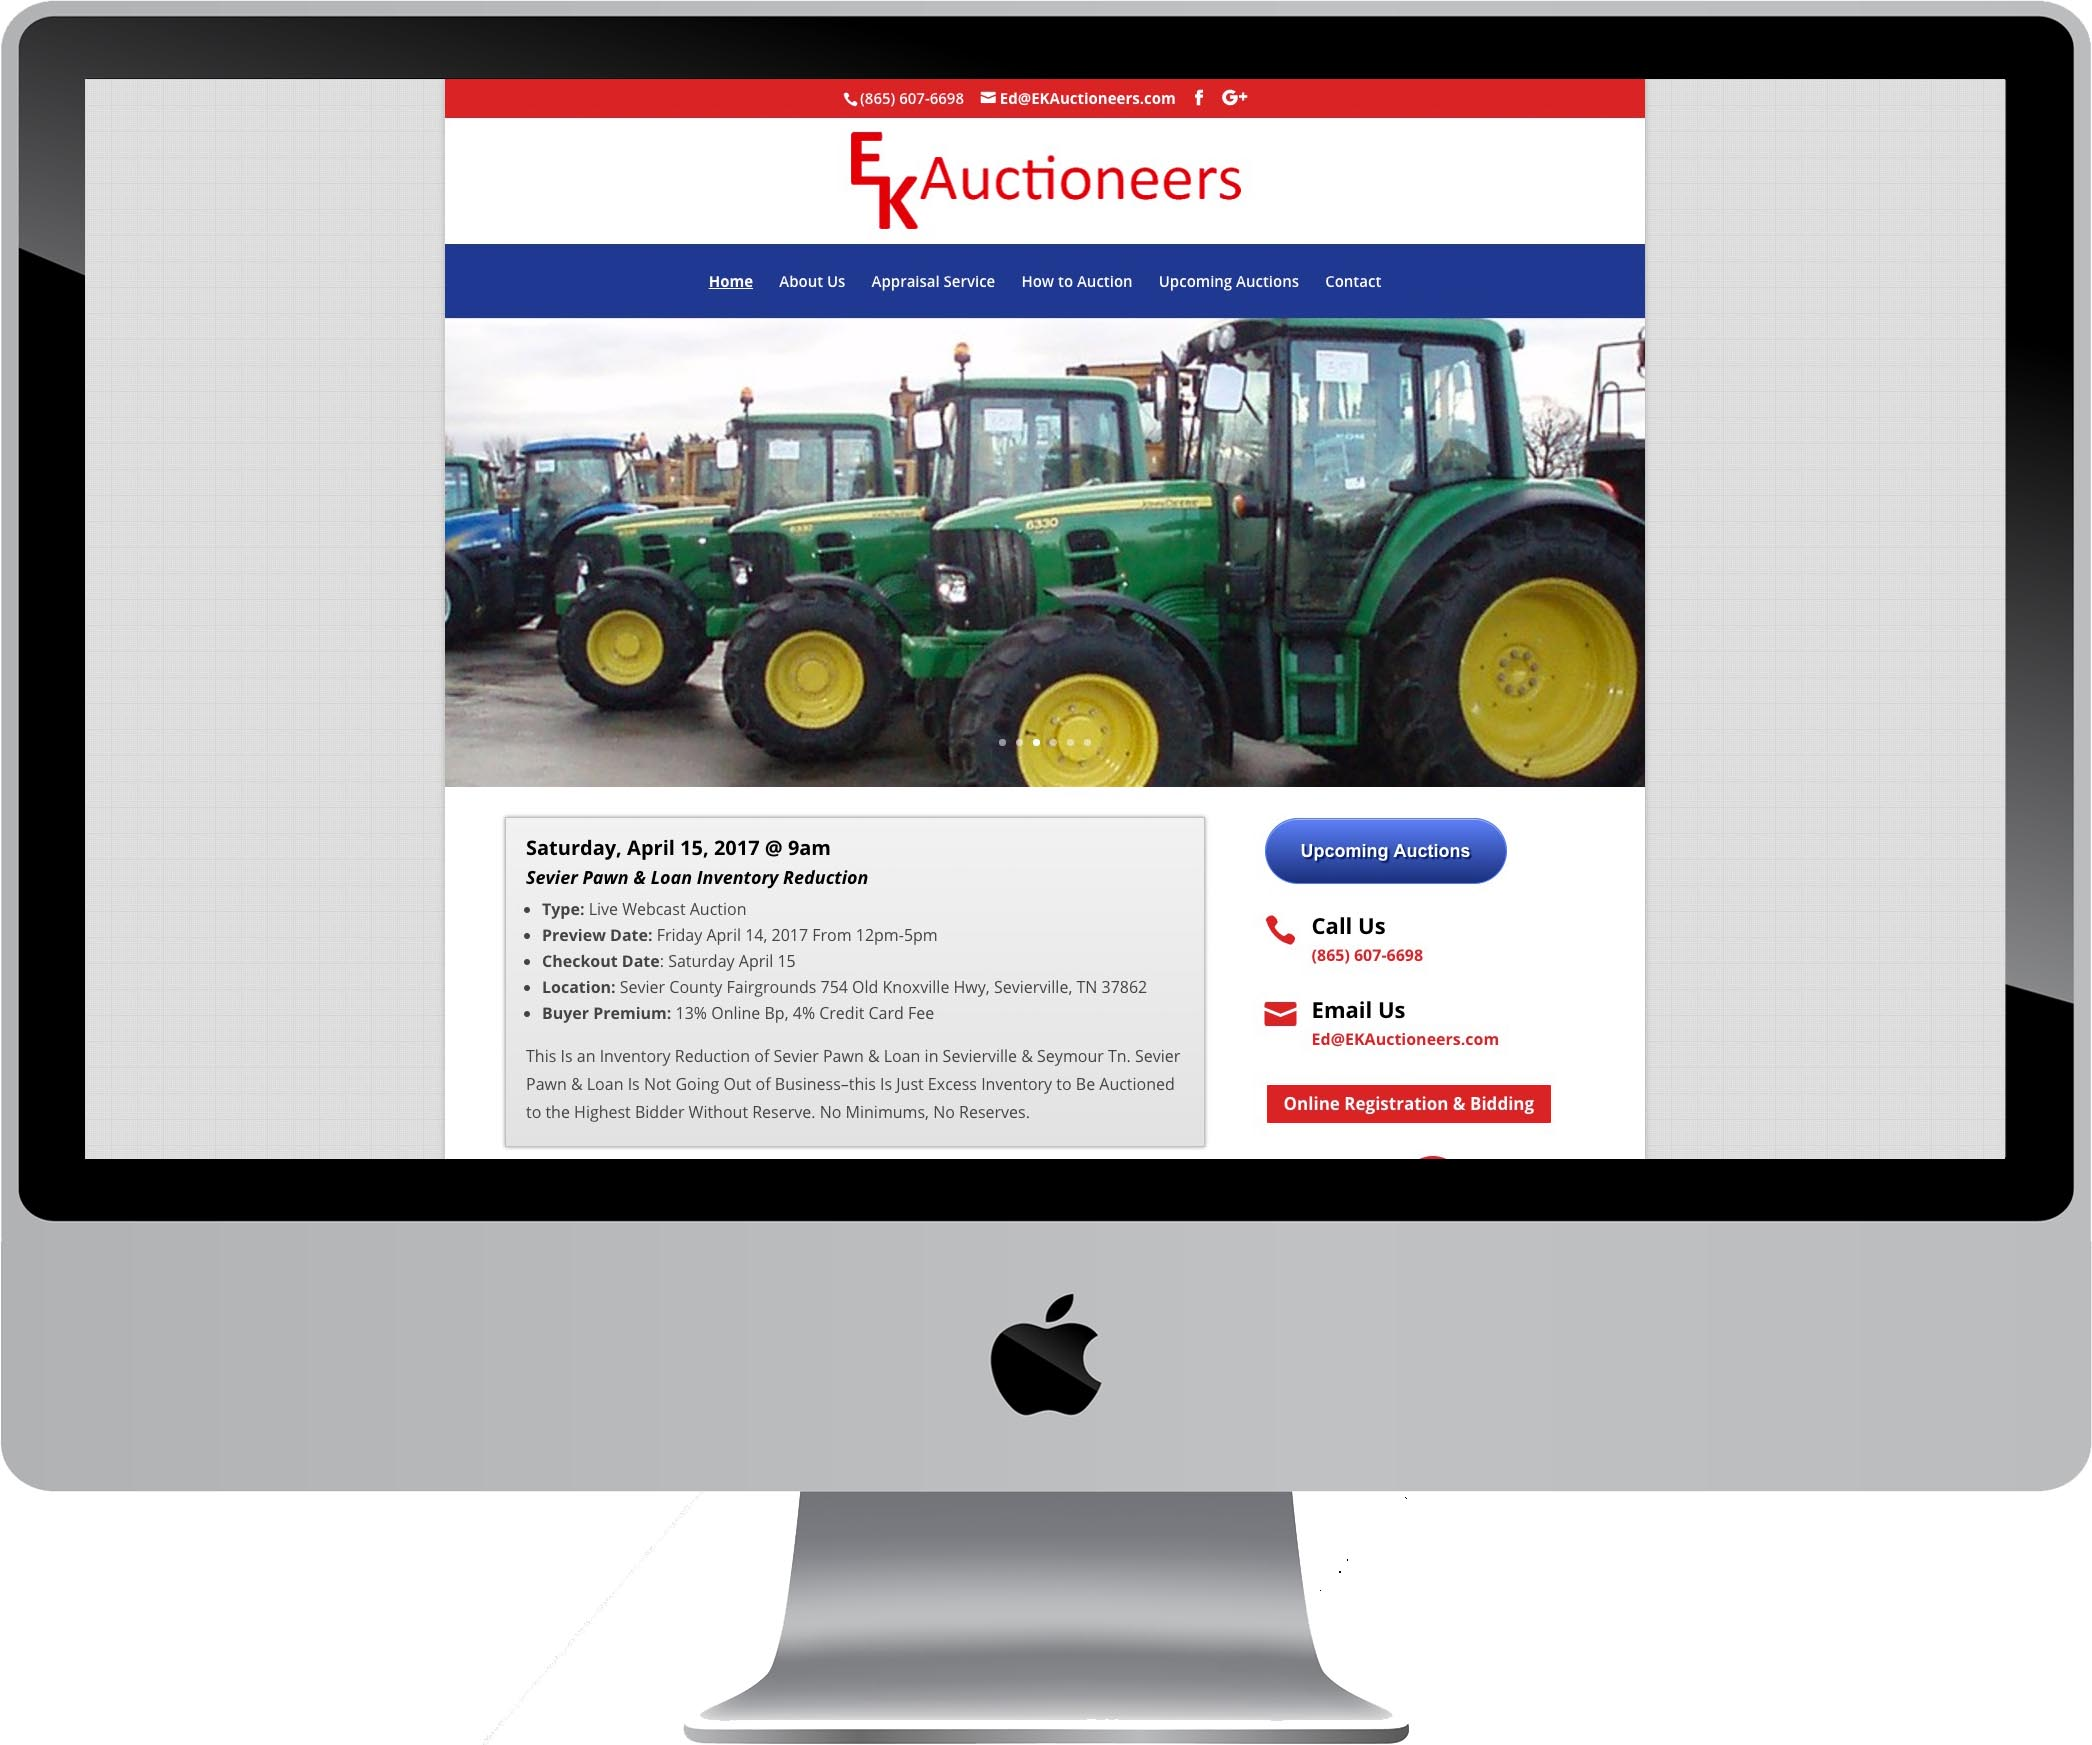 EK Auctioneers Website Design